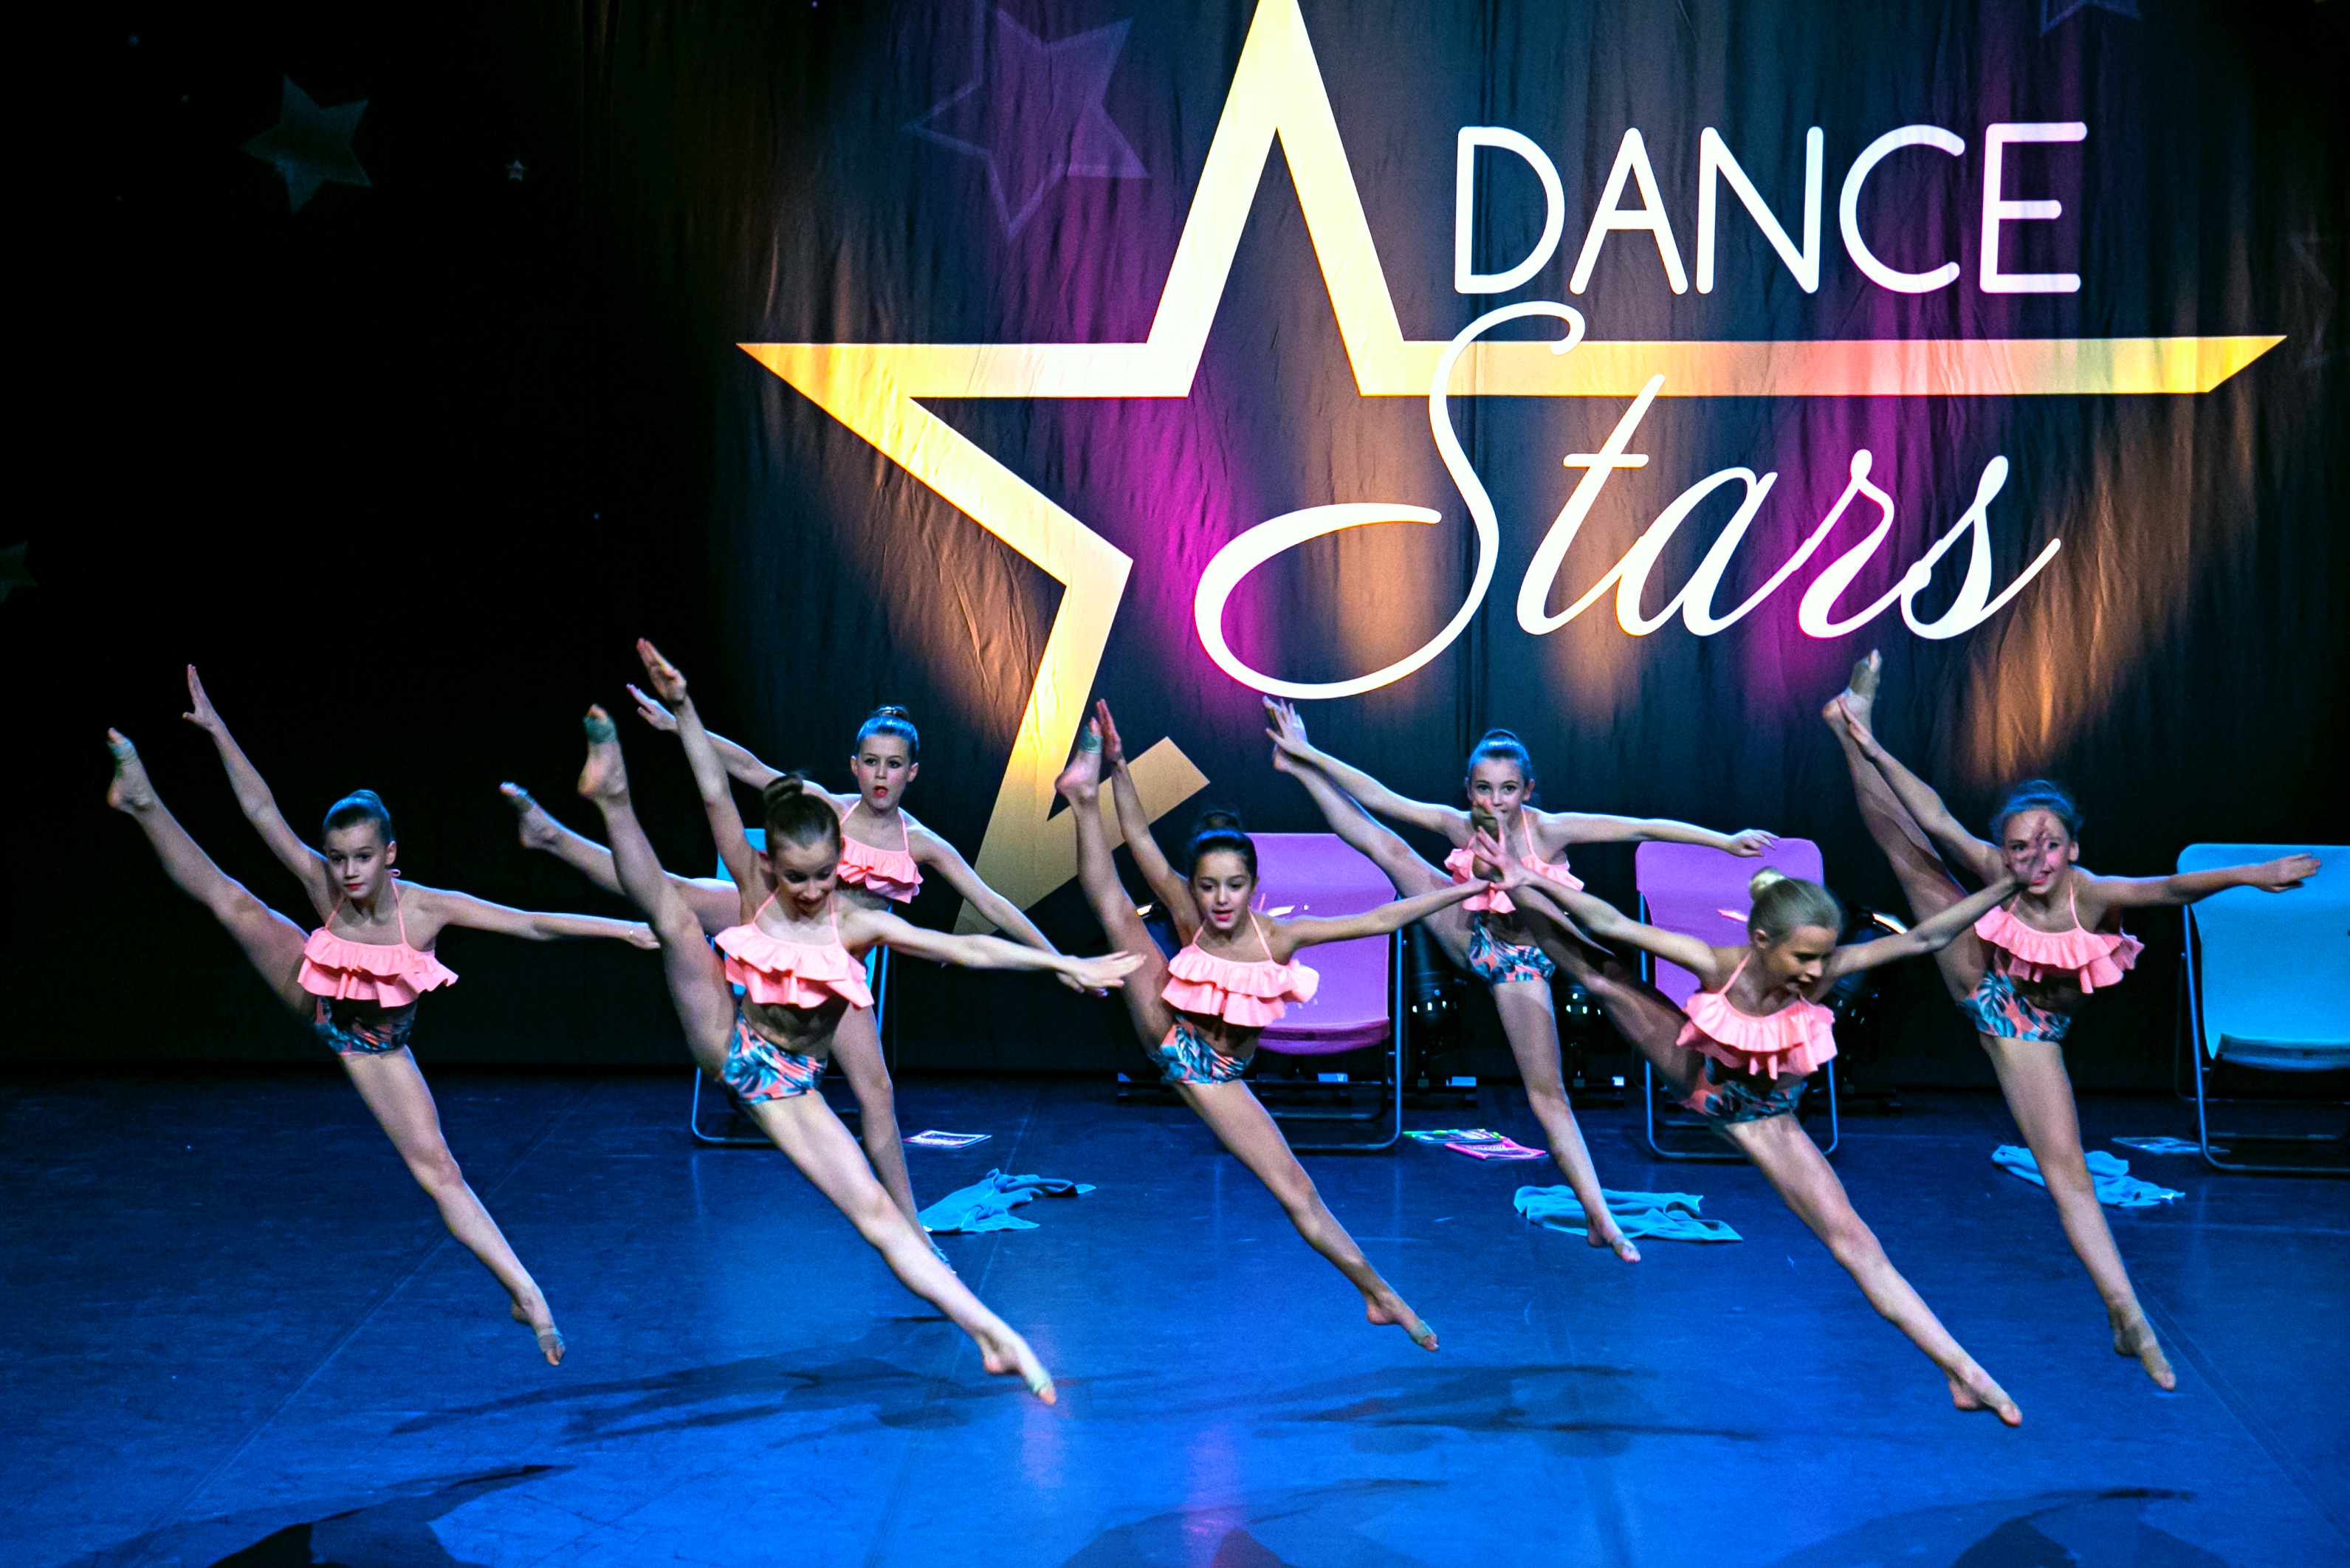 "<font style=""color: #faf0e6"">About DanceStars"